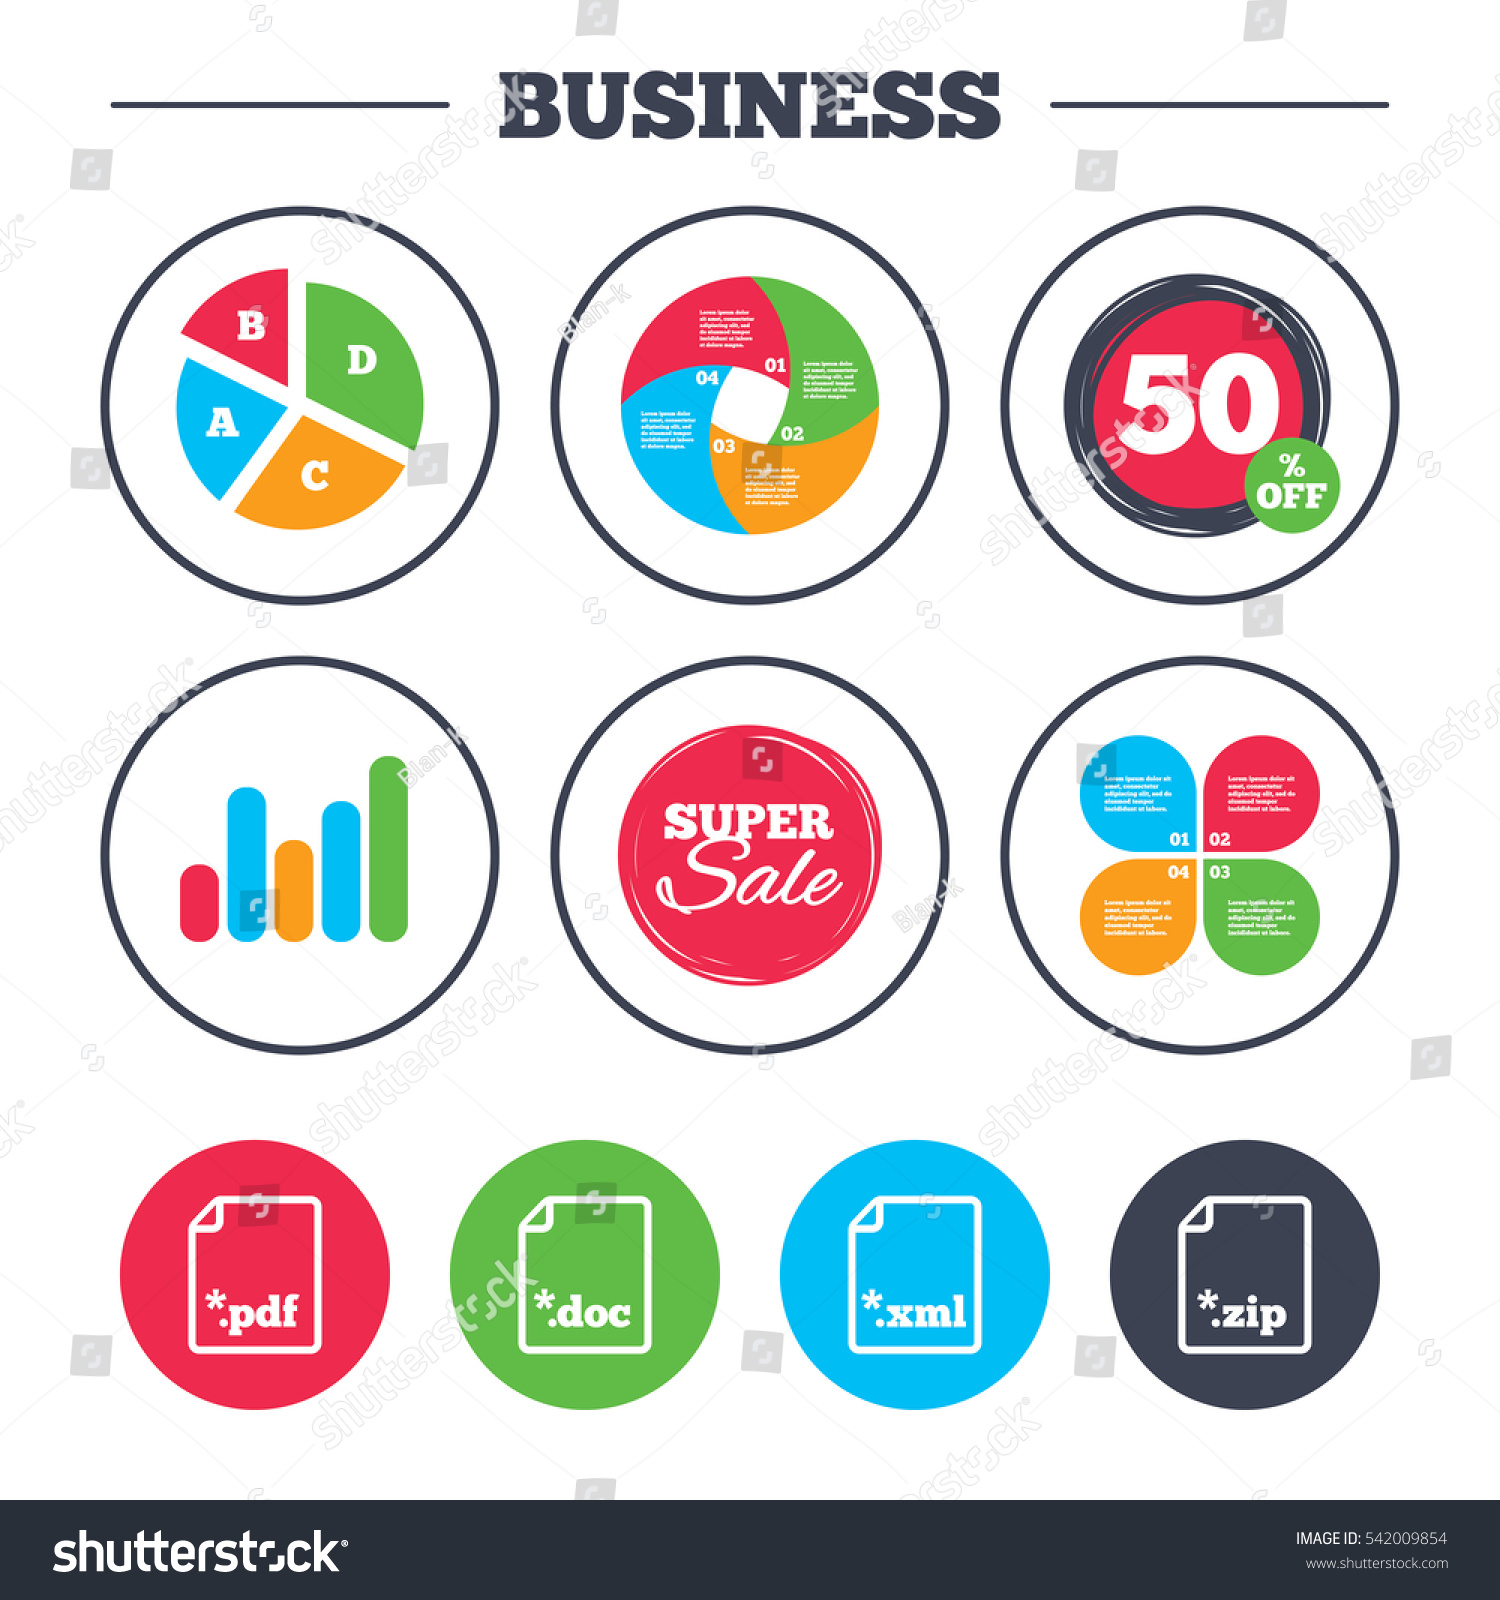 Business Pie Chart Growth Graph Download Stock Illustration